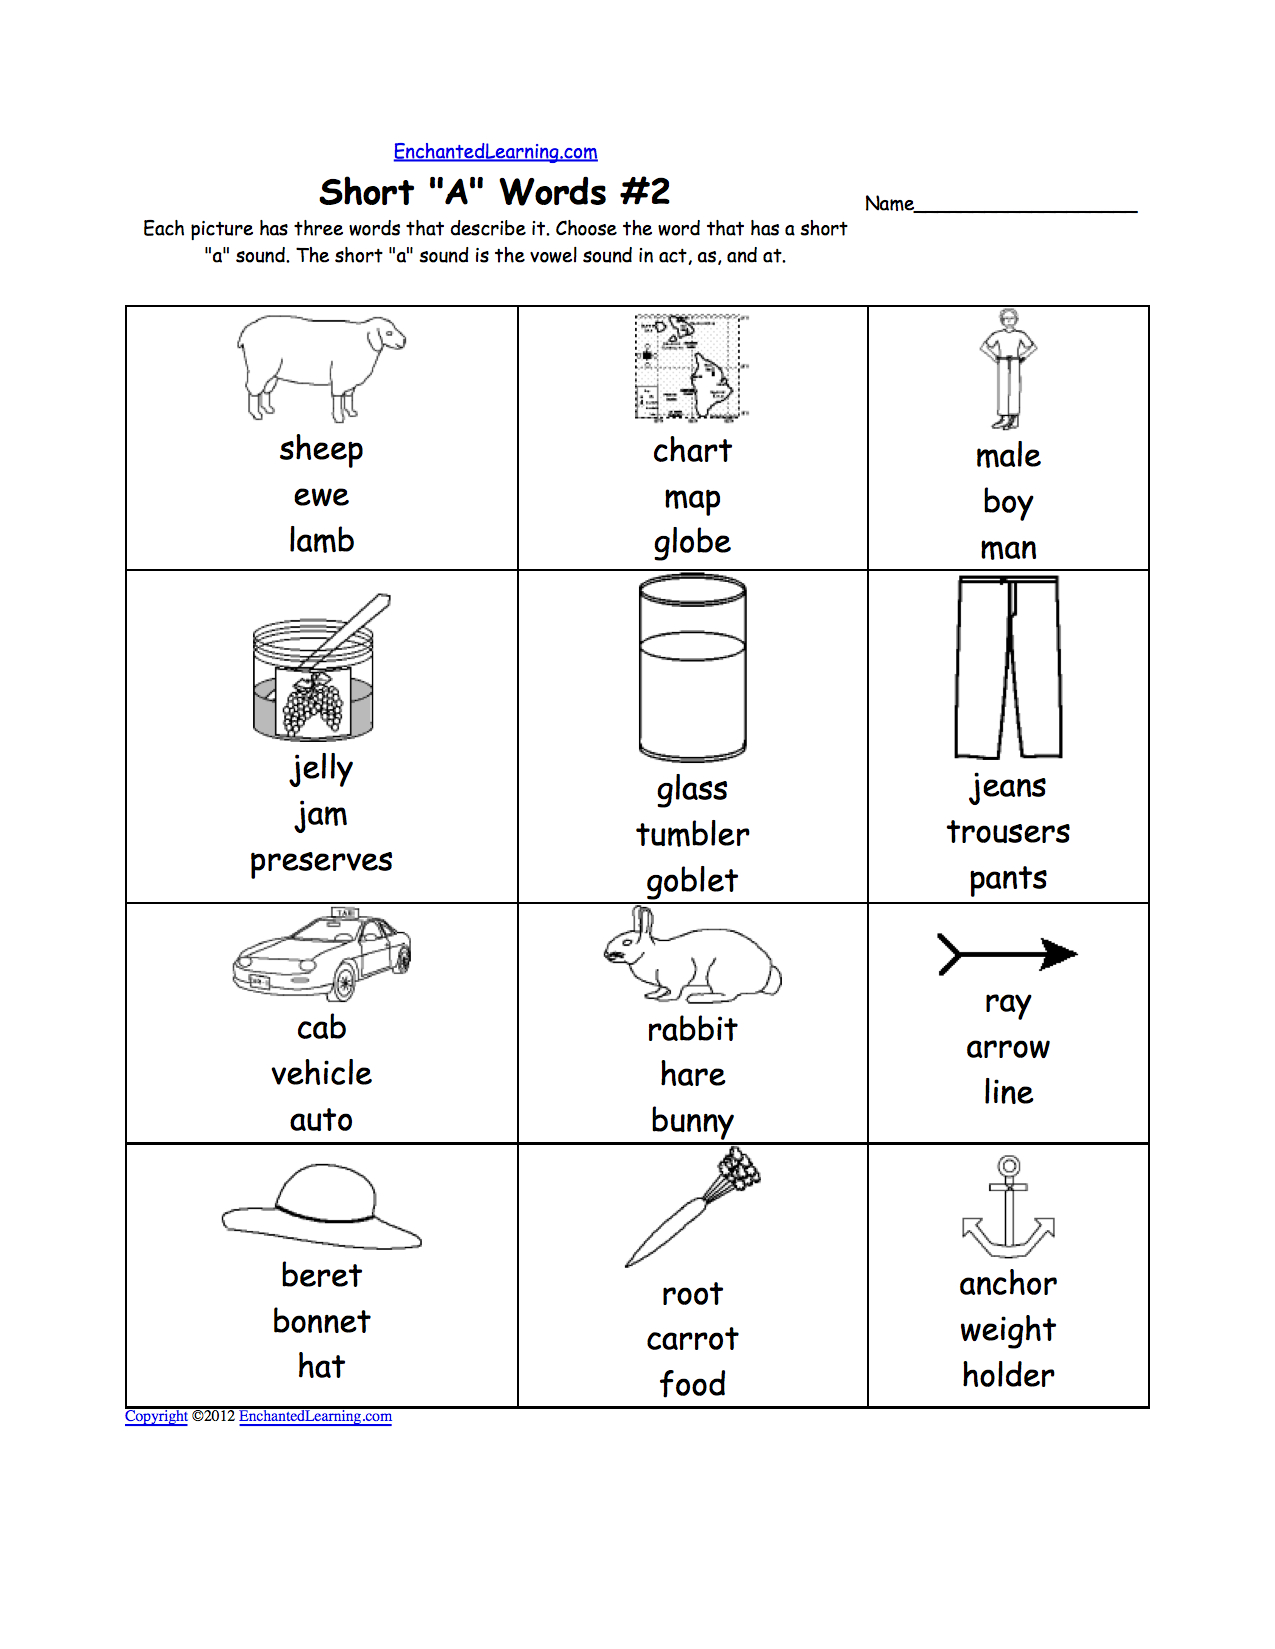 Phonics Worksheets Multiple Choice Worksheets To Print And Words With The Same Vowel Sound Worksheets